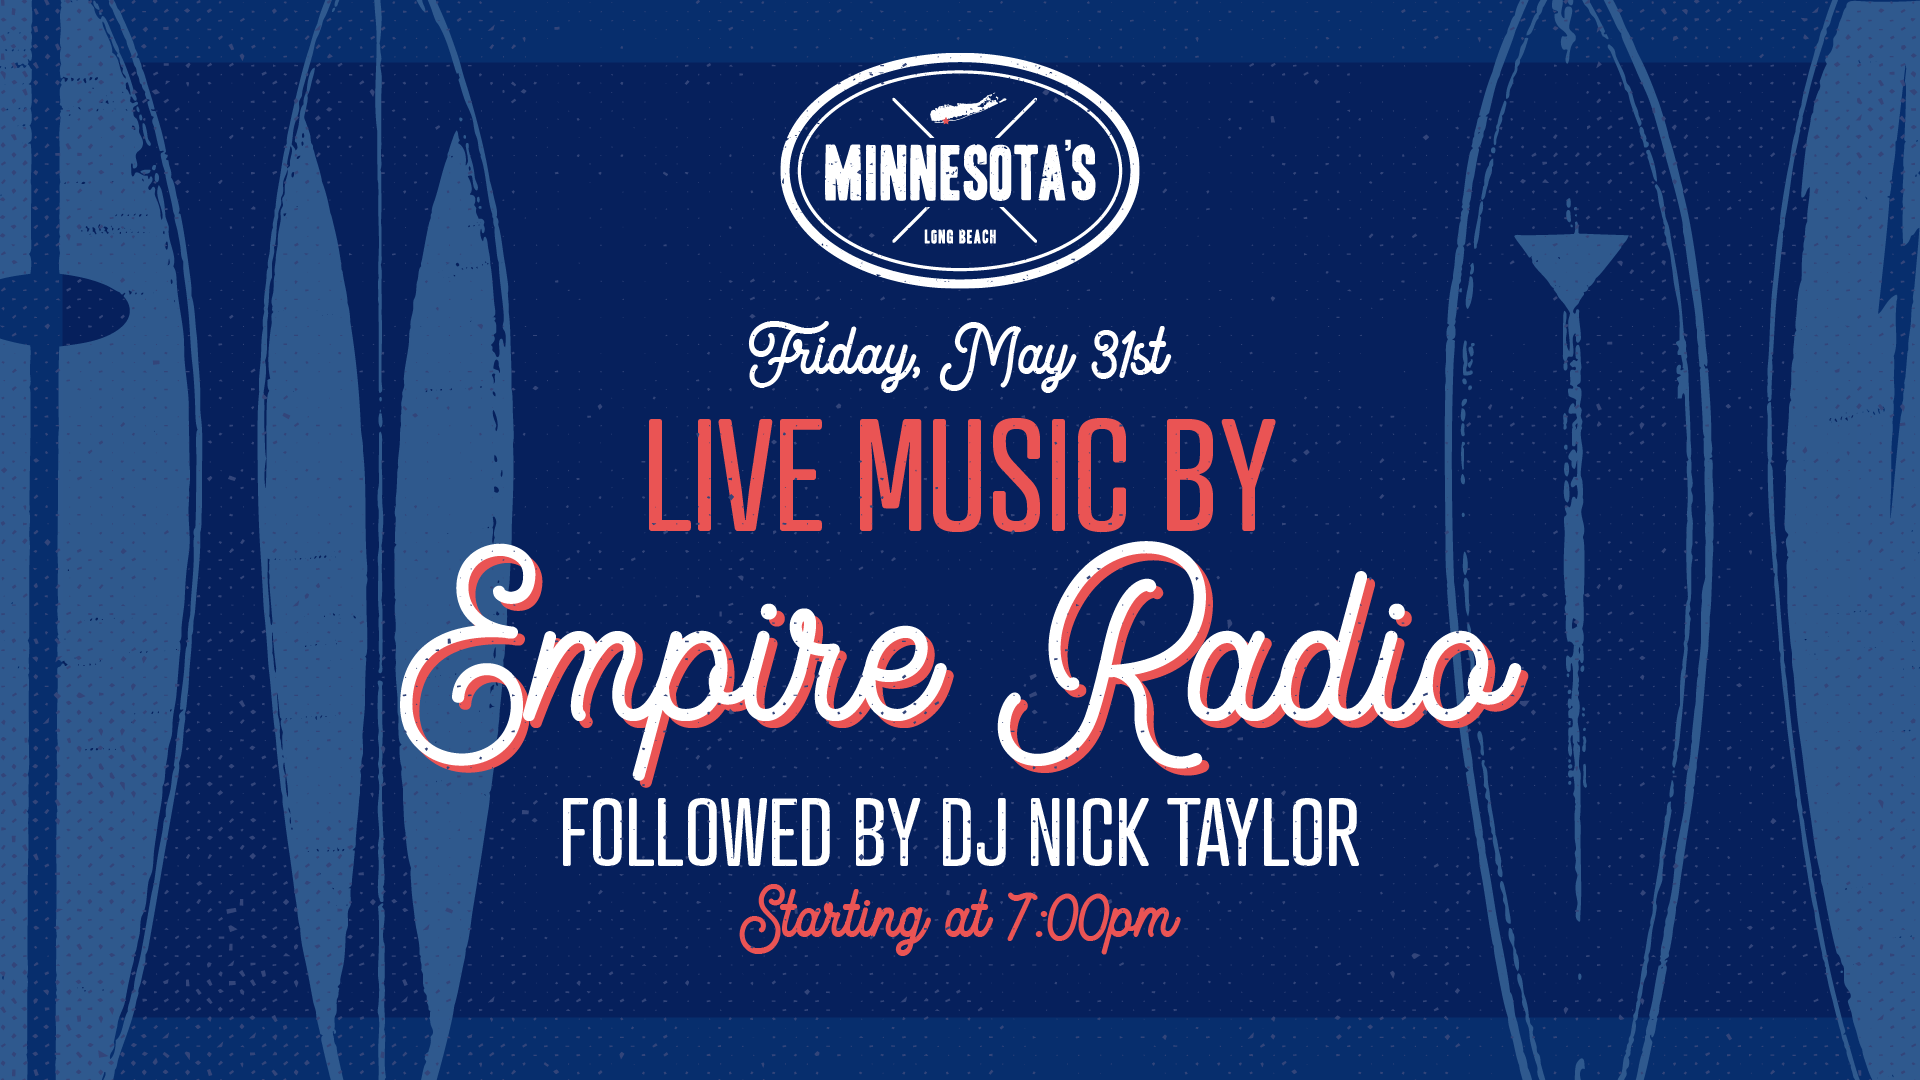 flyer for live music by empire radio at minnesotas on may 30th at 7pm